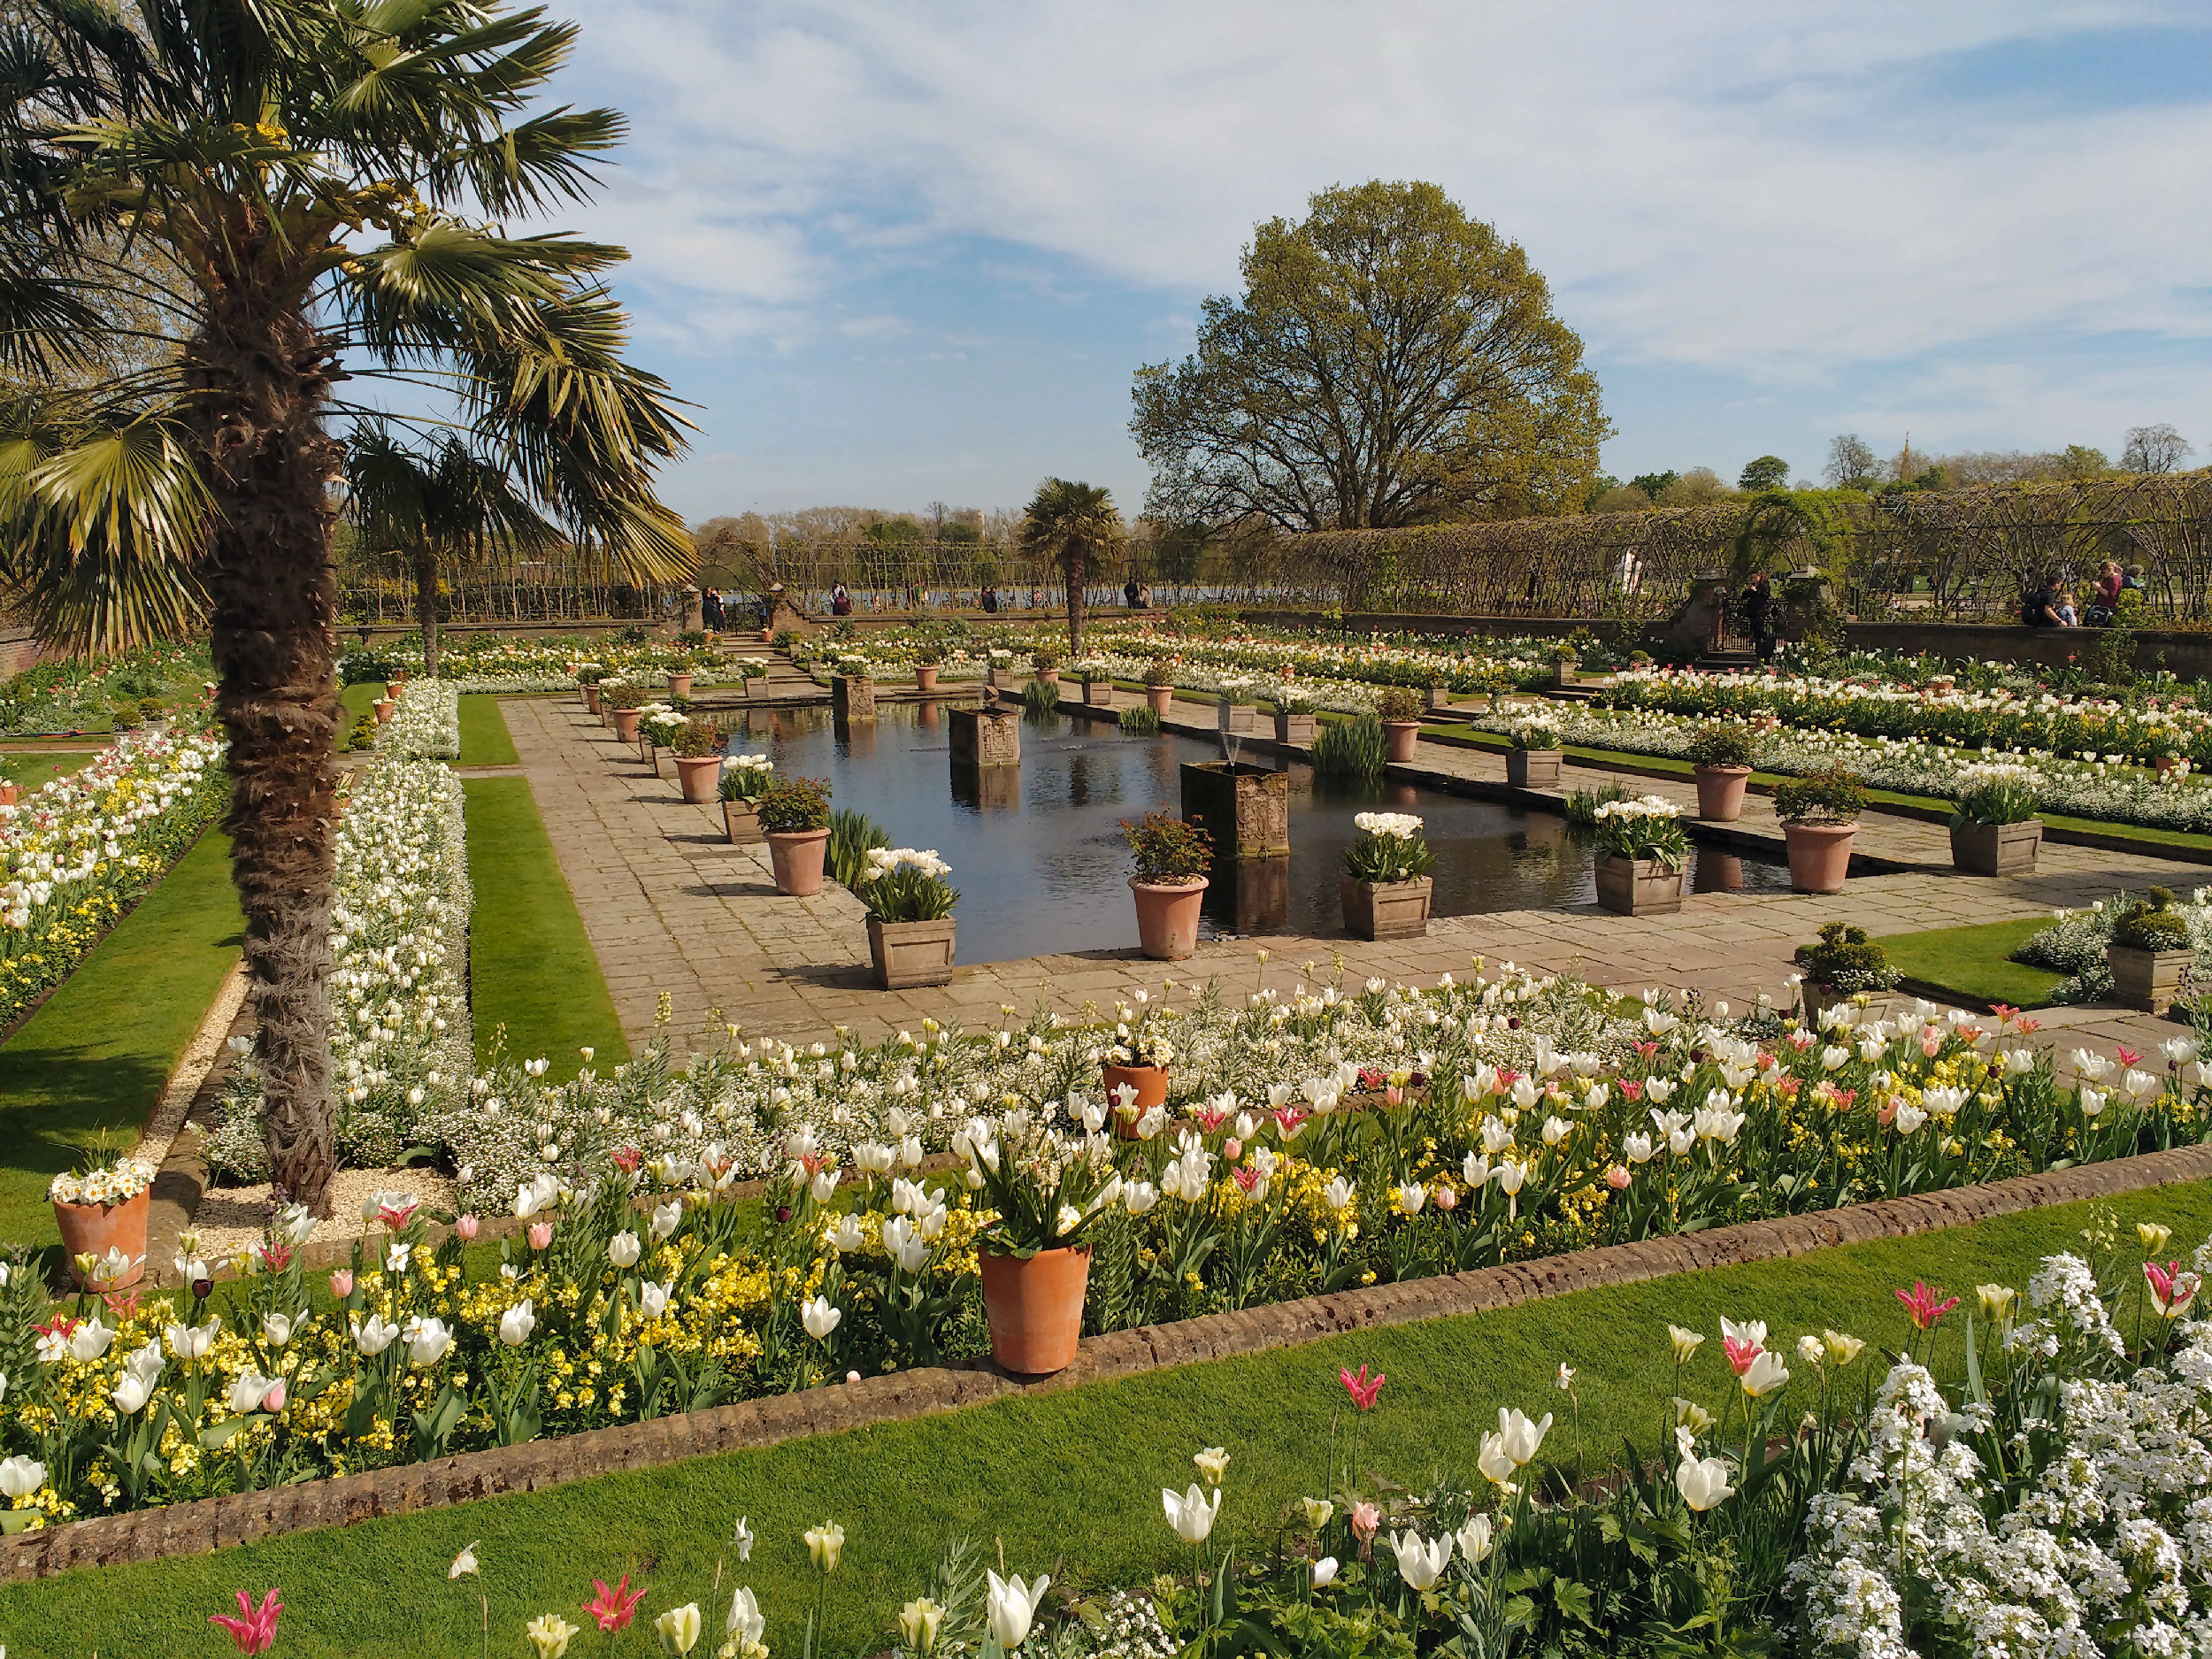 File:The White Garden, Kensington Palace.jpg - Wikimedia Commons